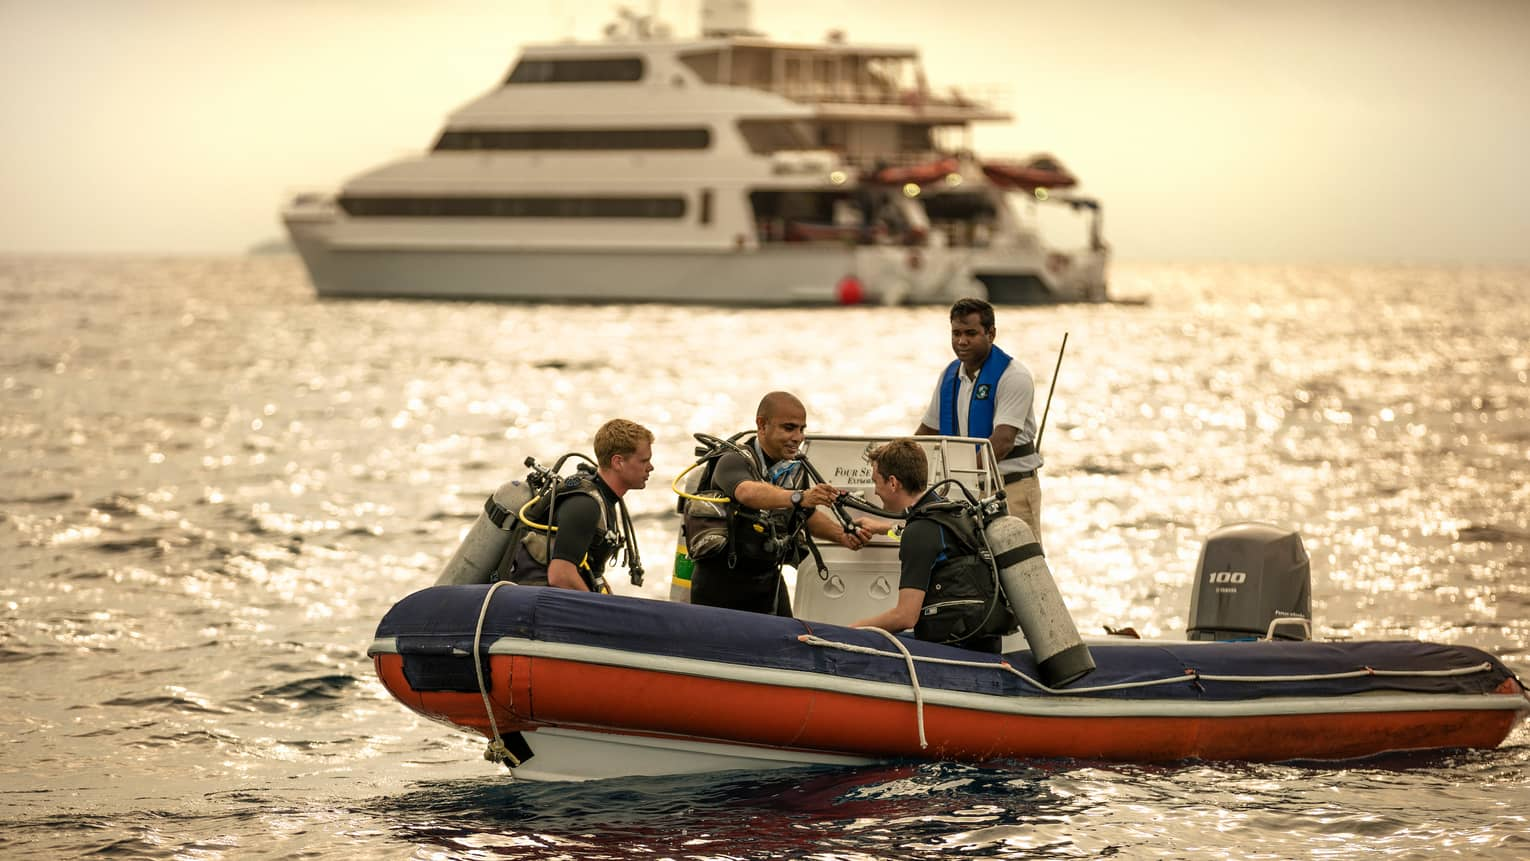 Scuba divers sit on inflatable boat, prepare to dive, yacht in background